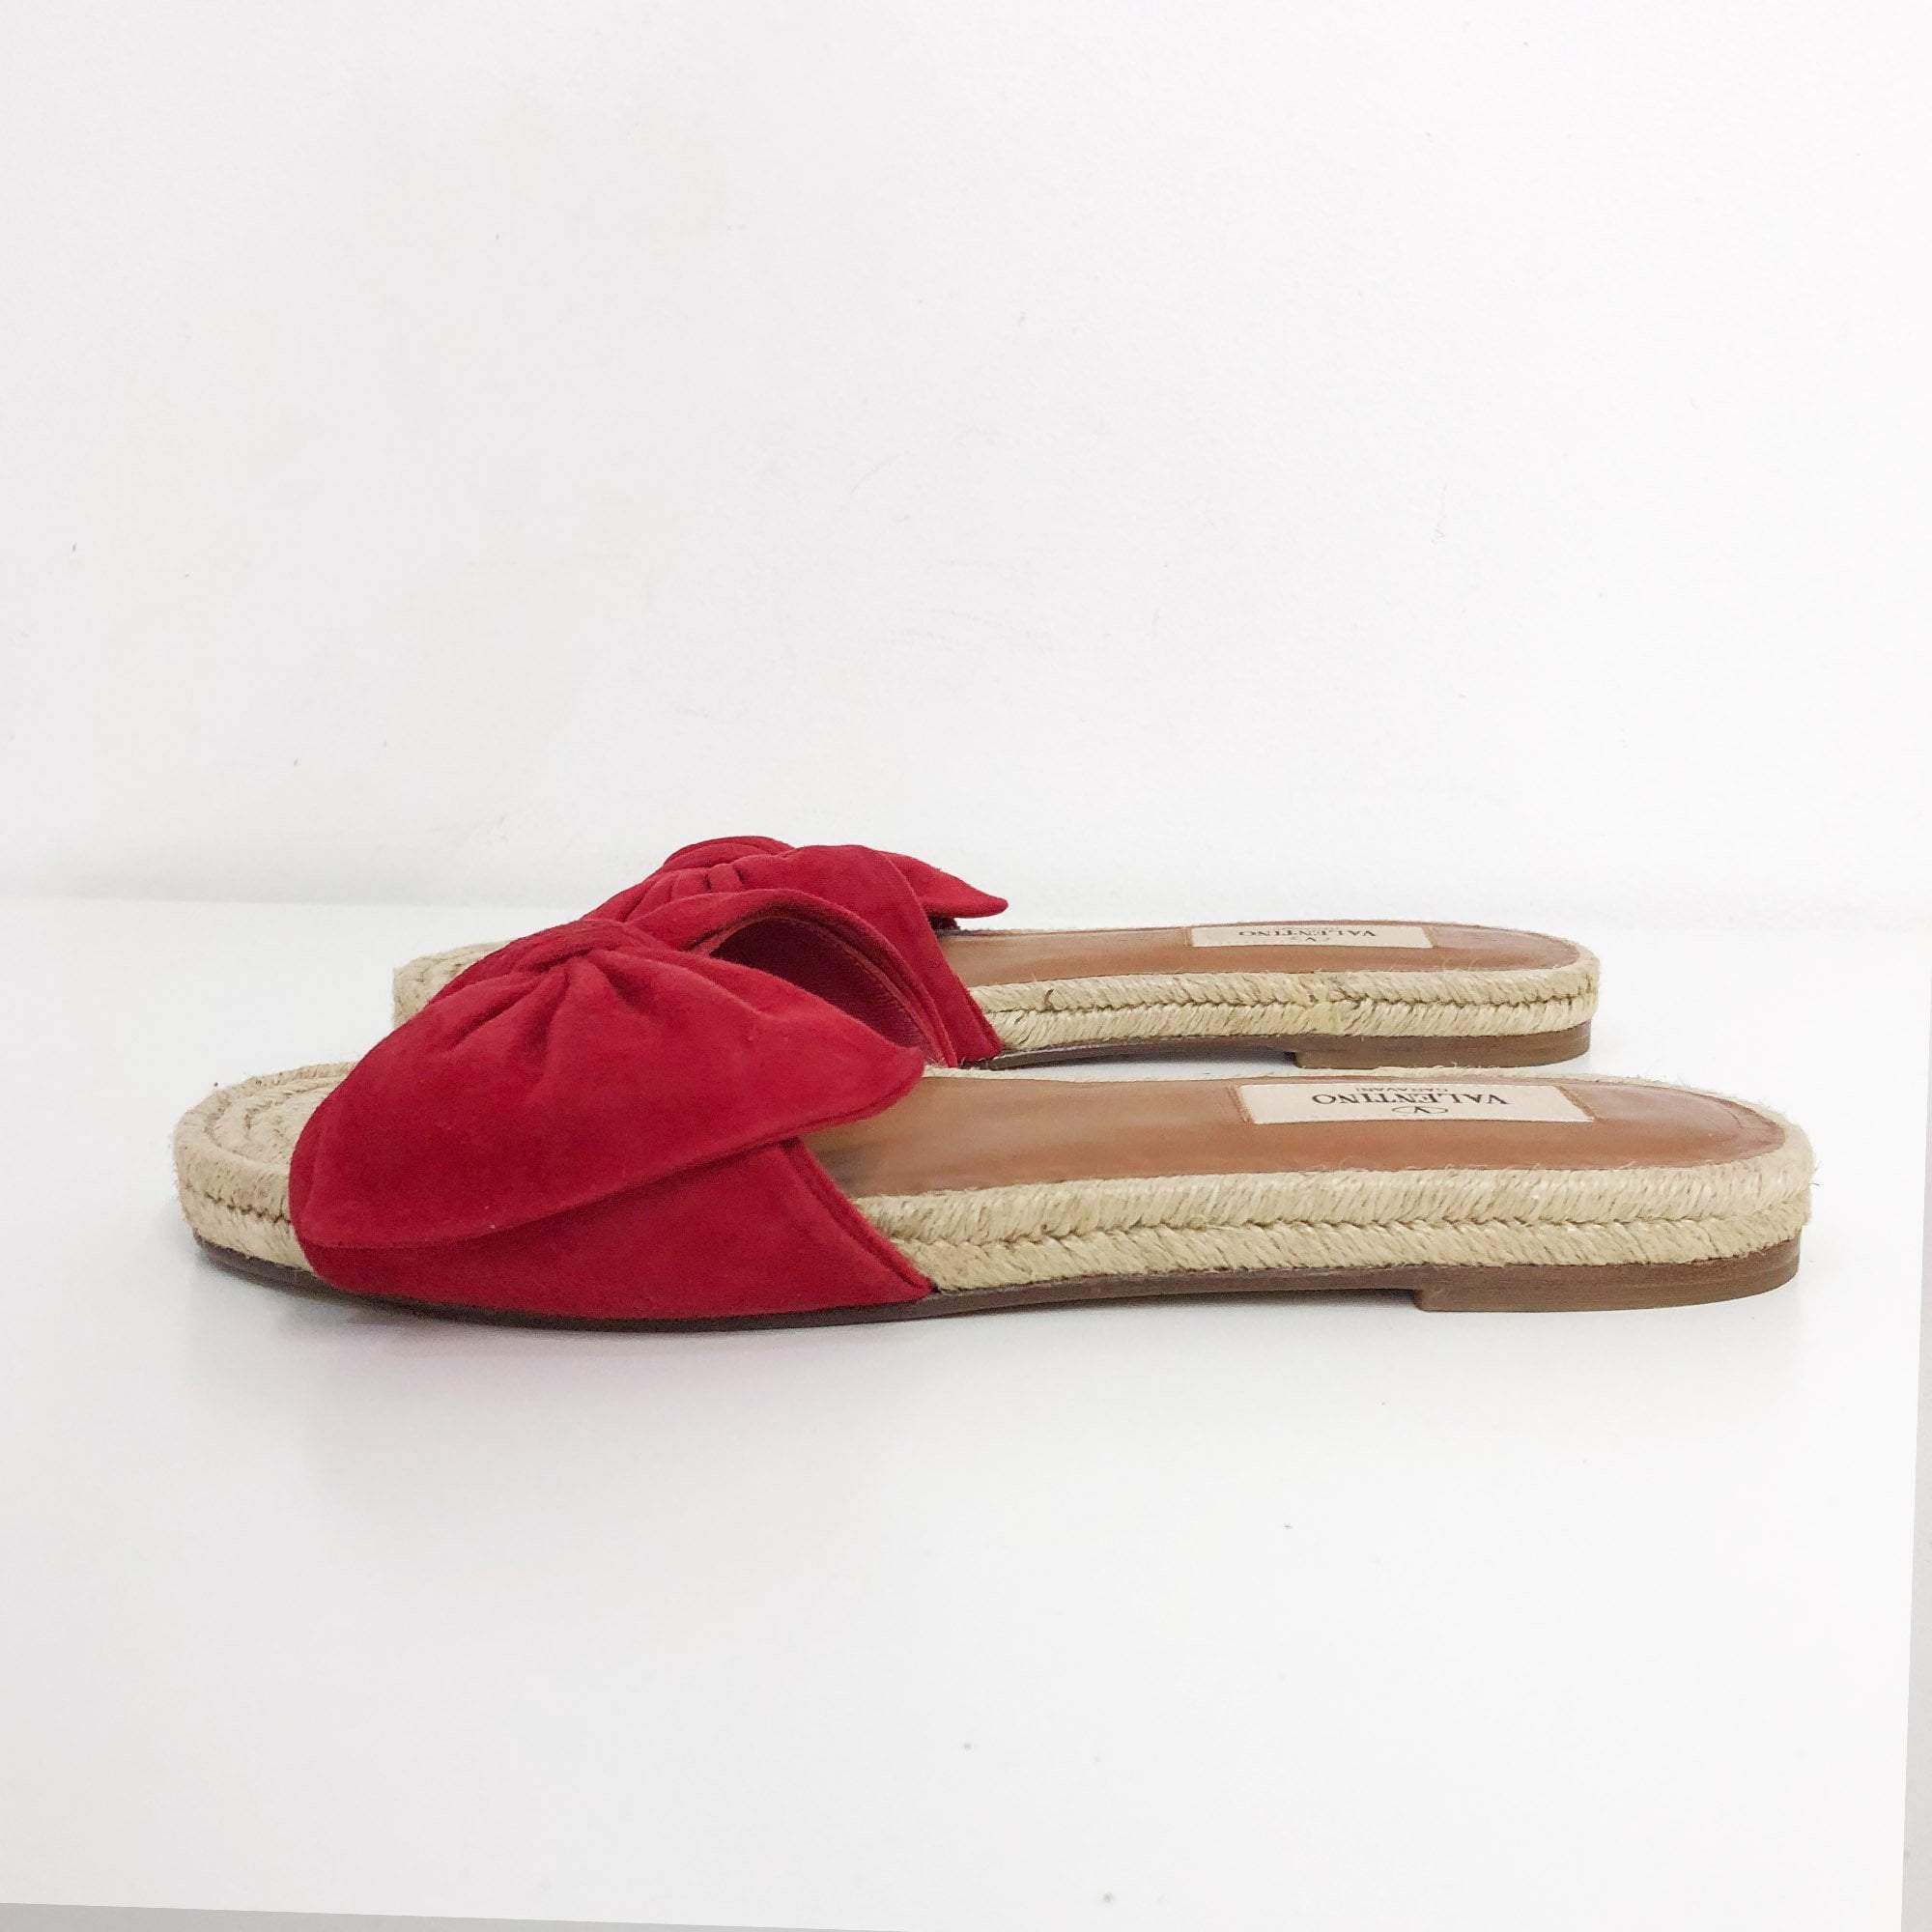 Valentino Red Tropical Bow Espadrille Slide Sandal